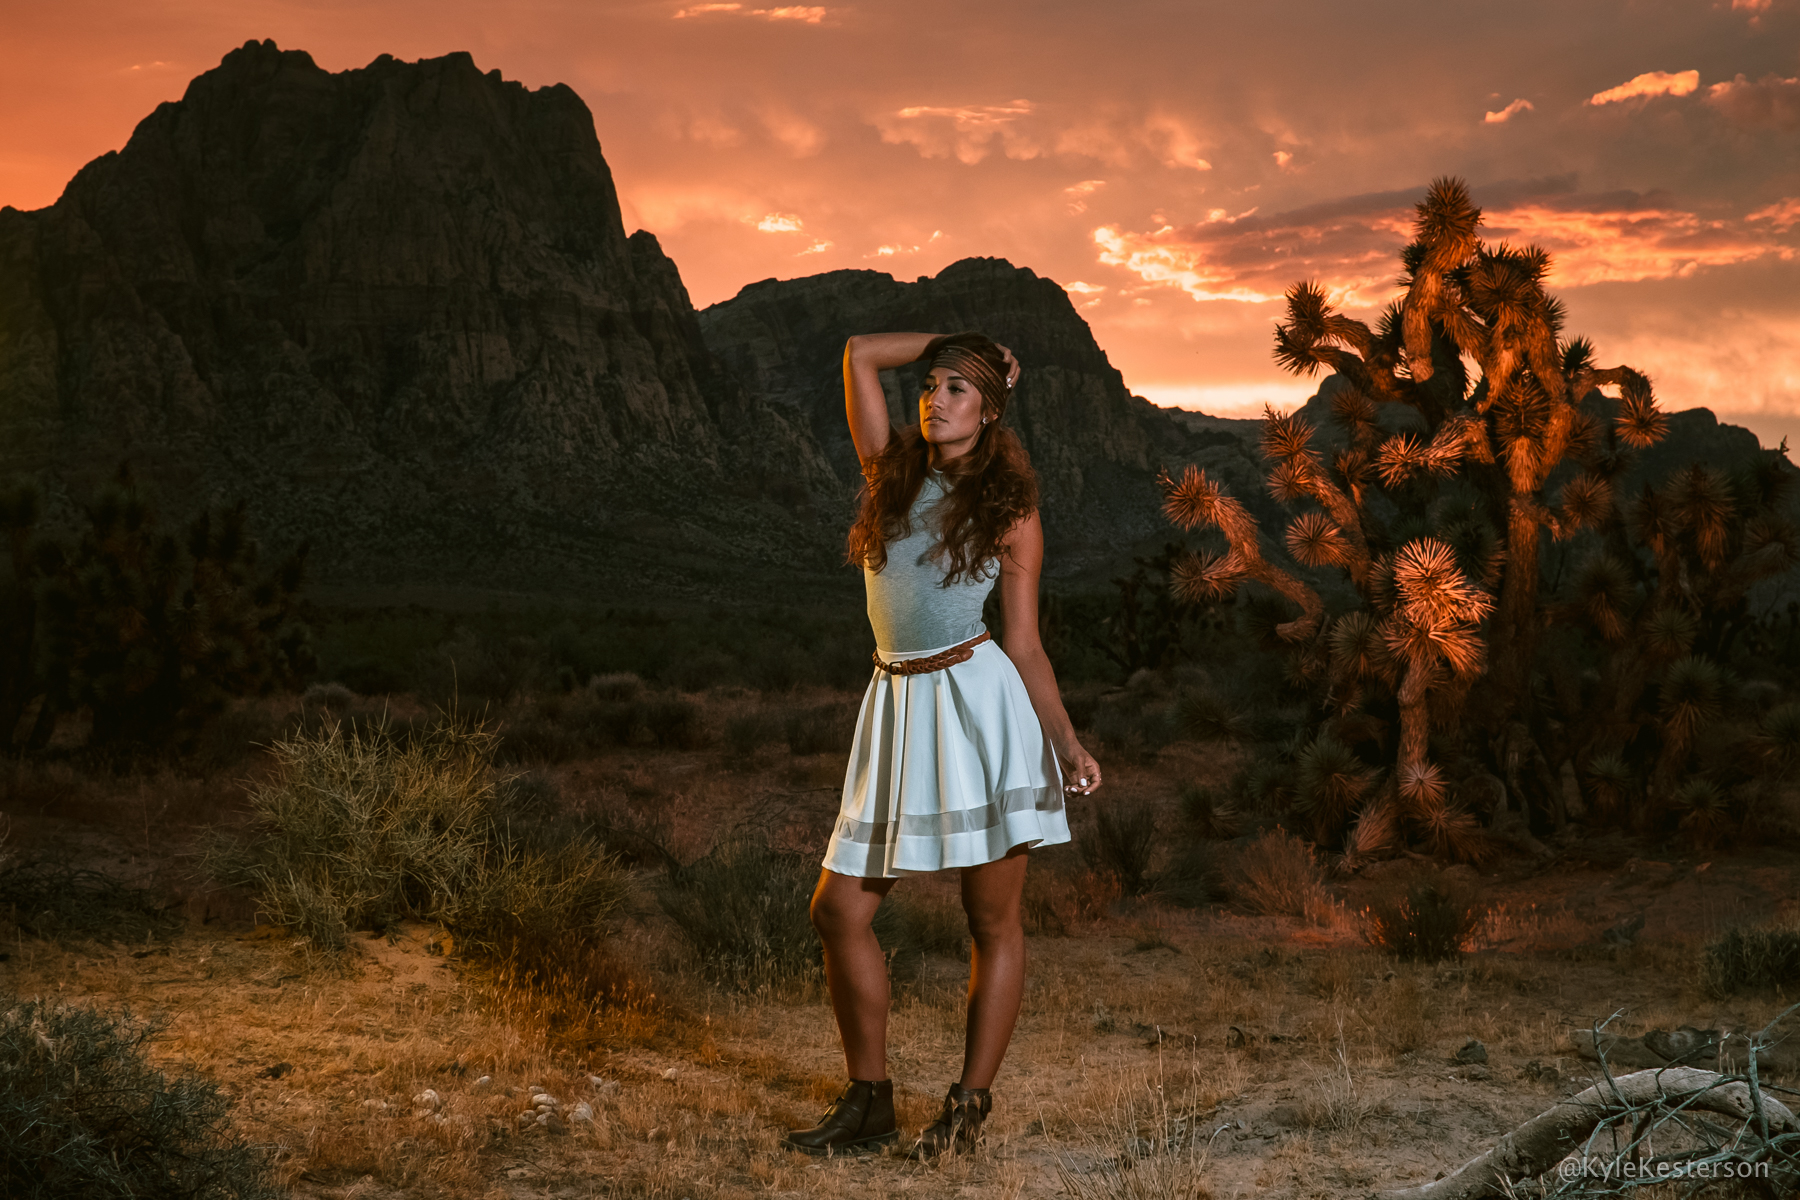 Sample image at Bonnie Springs, Nevada with Lenisa Careaga